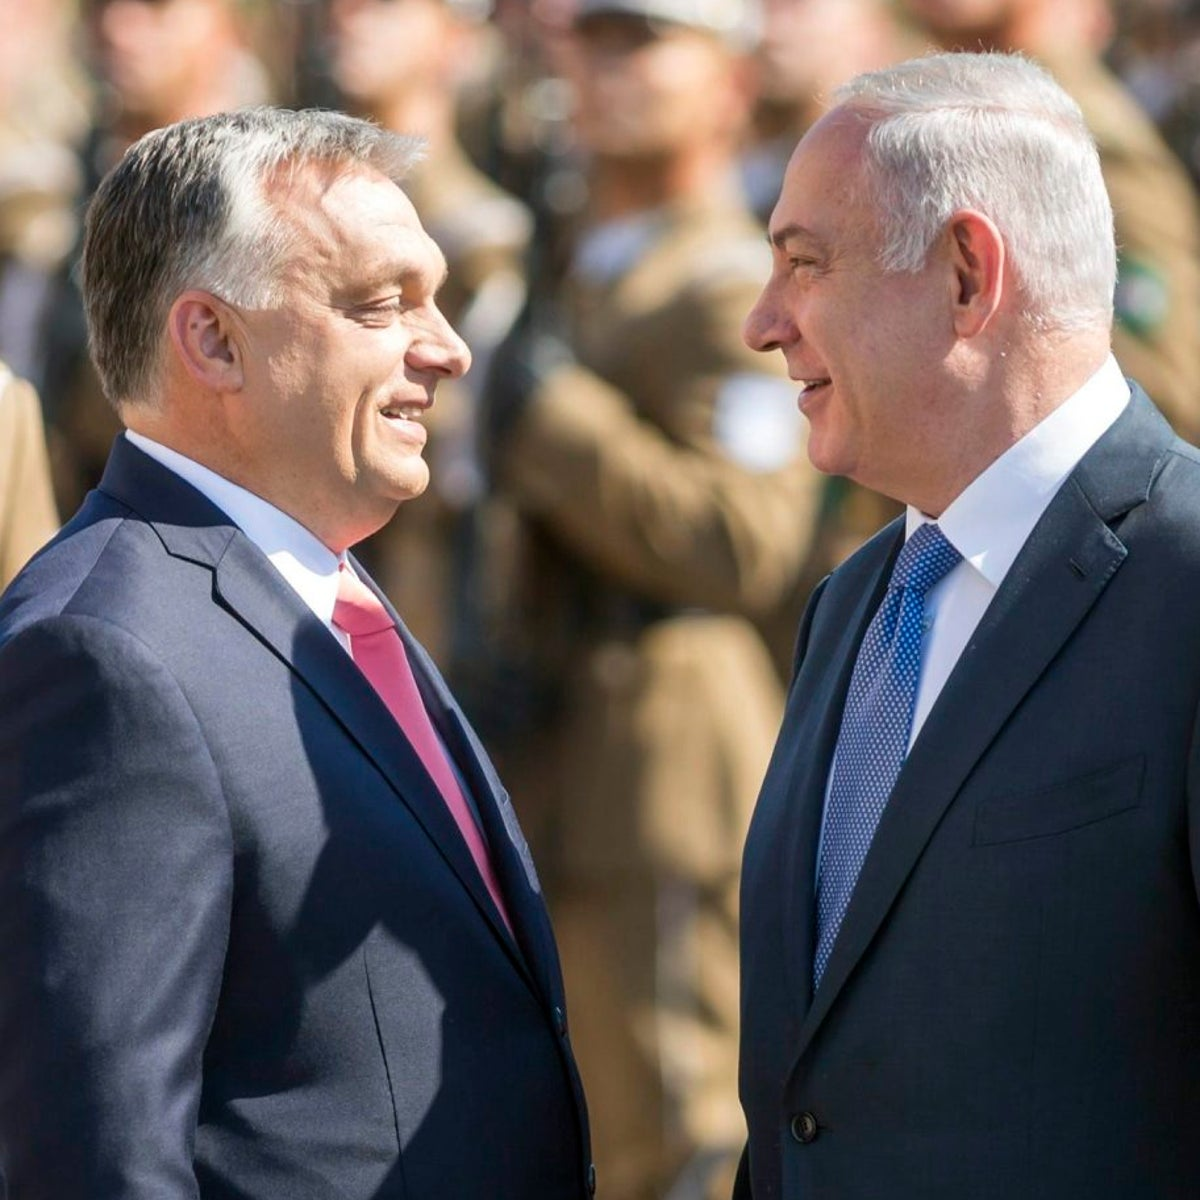 Prime Minister Benjamin Netanyahu, right, with Hungarian counterpart Viktor Orbán in Budapest, Hungary, July 18, 2017.